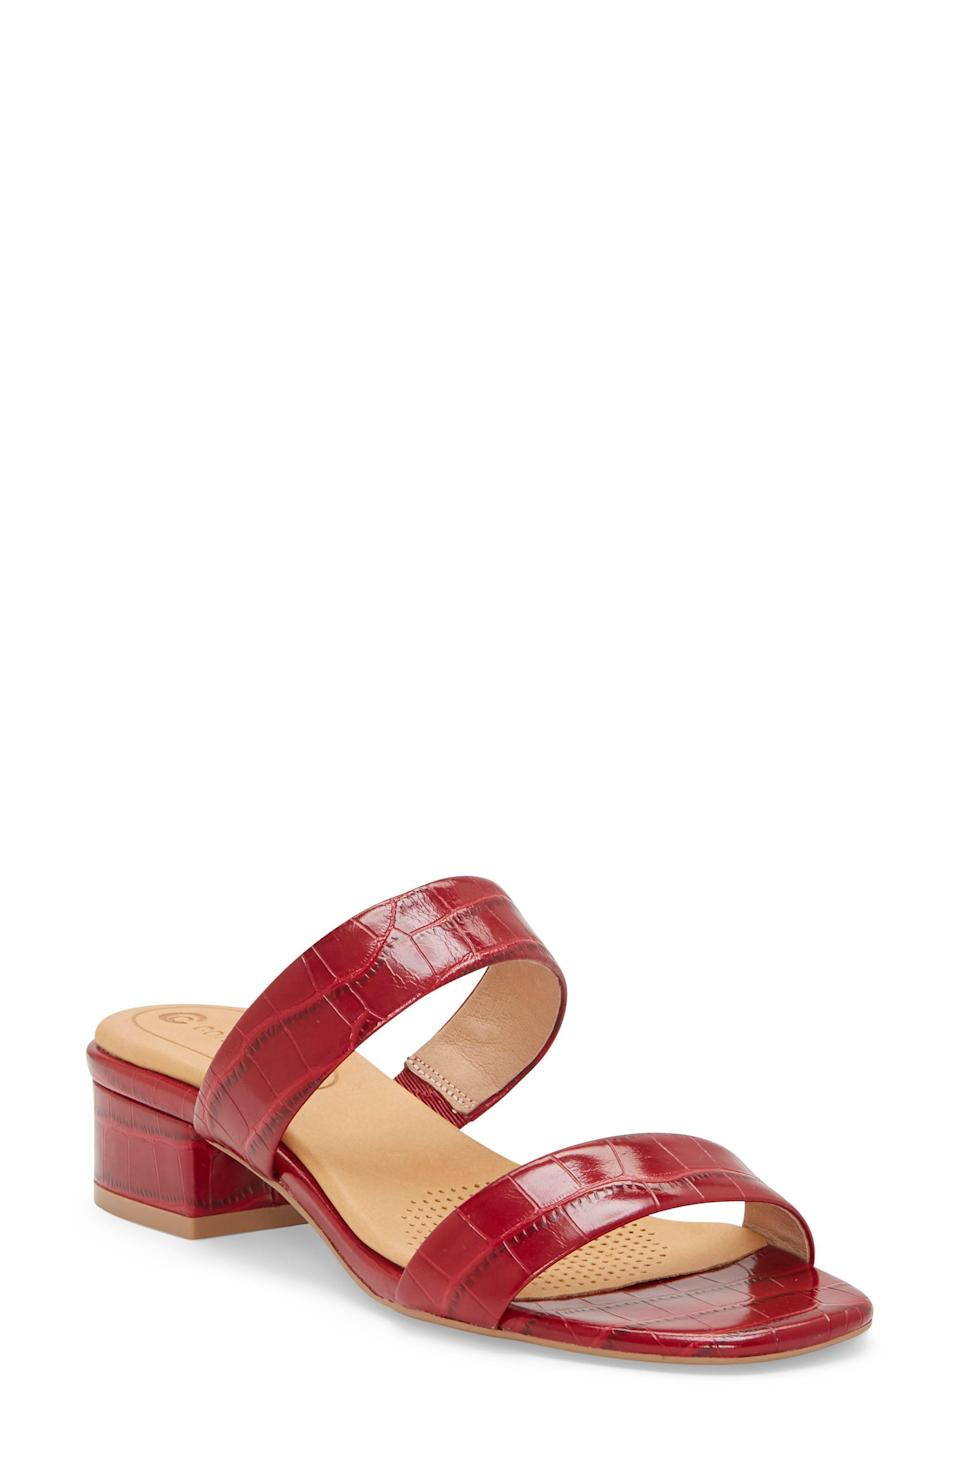 """<p><strong>CC Corso Como</strong></p><p>nordstrom.com</p><p><strong>$118.95</strong></p><p><a href=""""https://go.redirectingat.com?id=74968X1596630&url=https%3A%2F%2Fwww.nordstrom.com%2Fs%2Fcc-corso-como-faeya-slide-sandal-women%2F5584694&sref=https%3A%2F%2Fwww.oprahdaily.com%2Fstyle%2Fg25893553%2Fbest-sandals-for-women%2F"""" rel=""""nofollow noopener"""" target=""""_blank"""" data-ylk=""""slk:SHOP NOW"""" class=""""link rapid-noclick-resp"""">SHOP NOW</a></p><p>Strappy yet supportive, this dressy block heel style features a cushy perforated footbed for breathability.</p>"""